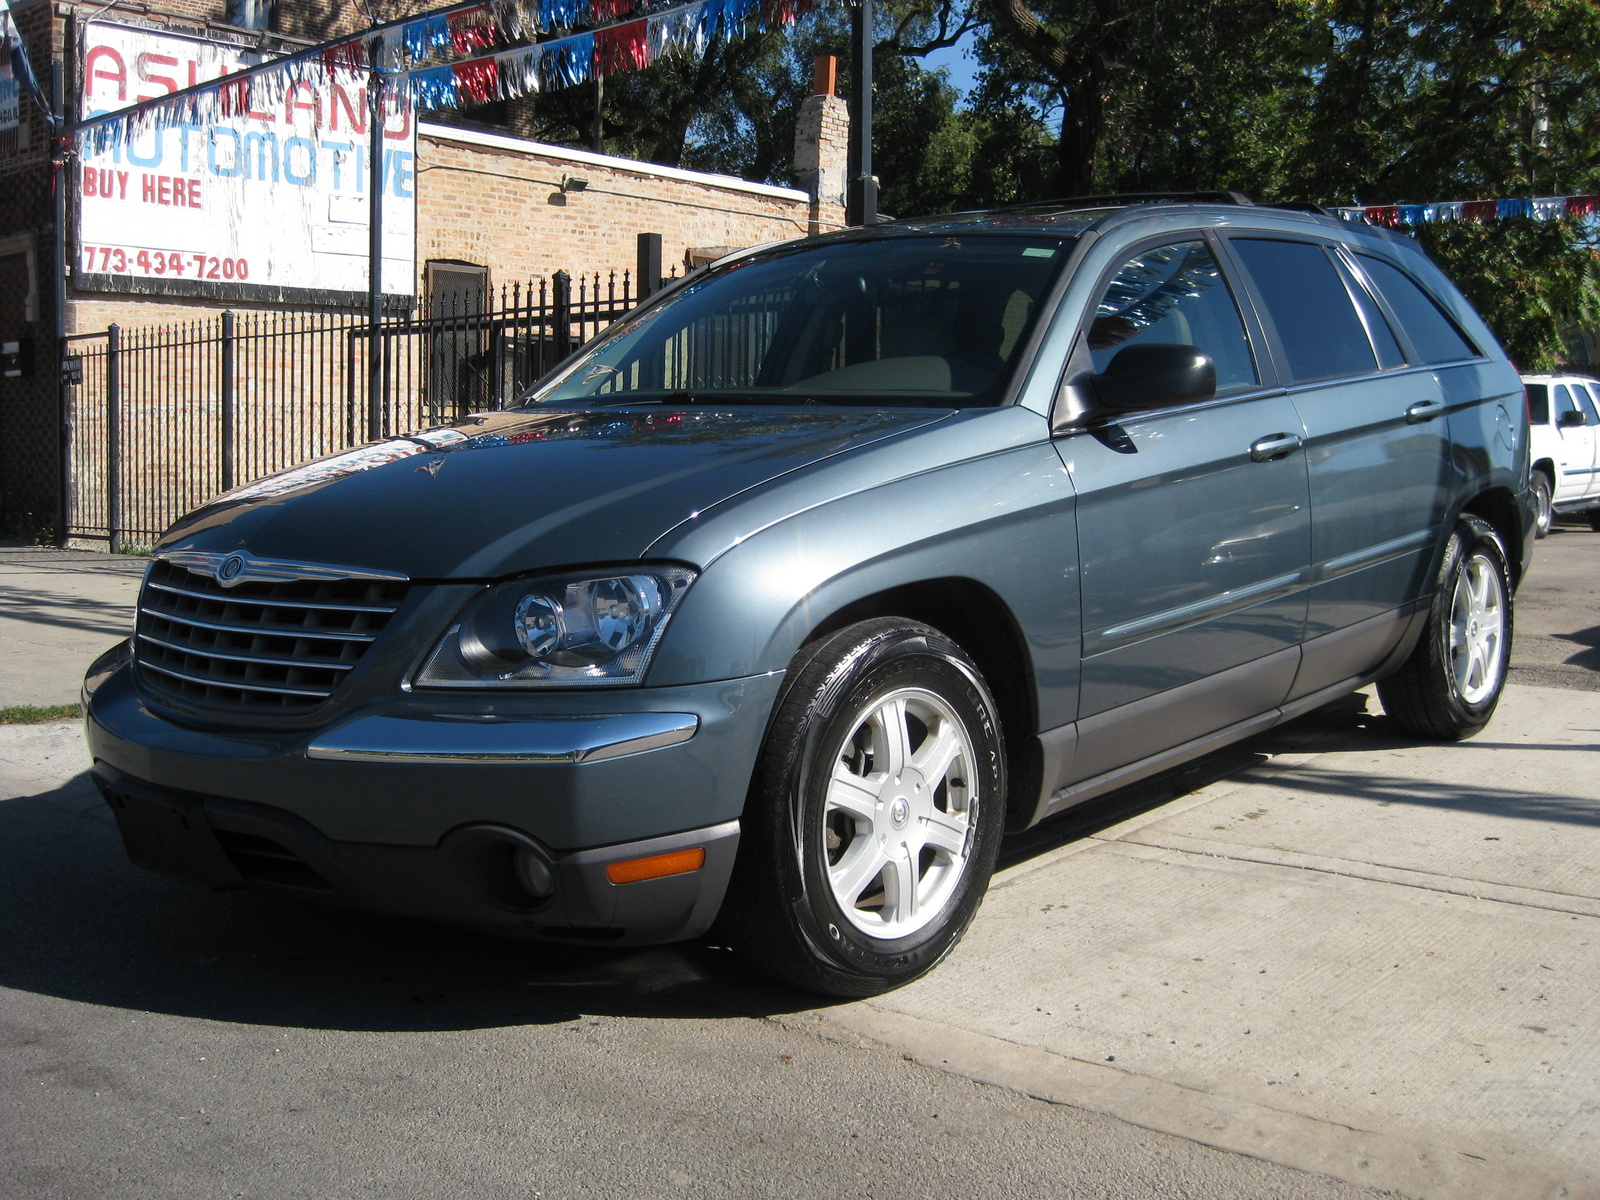 2005 chrysler pacifica touring awd picture exterior. Cars Review. Best American Auto & Cars Review